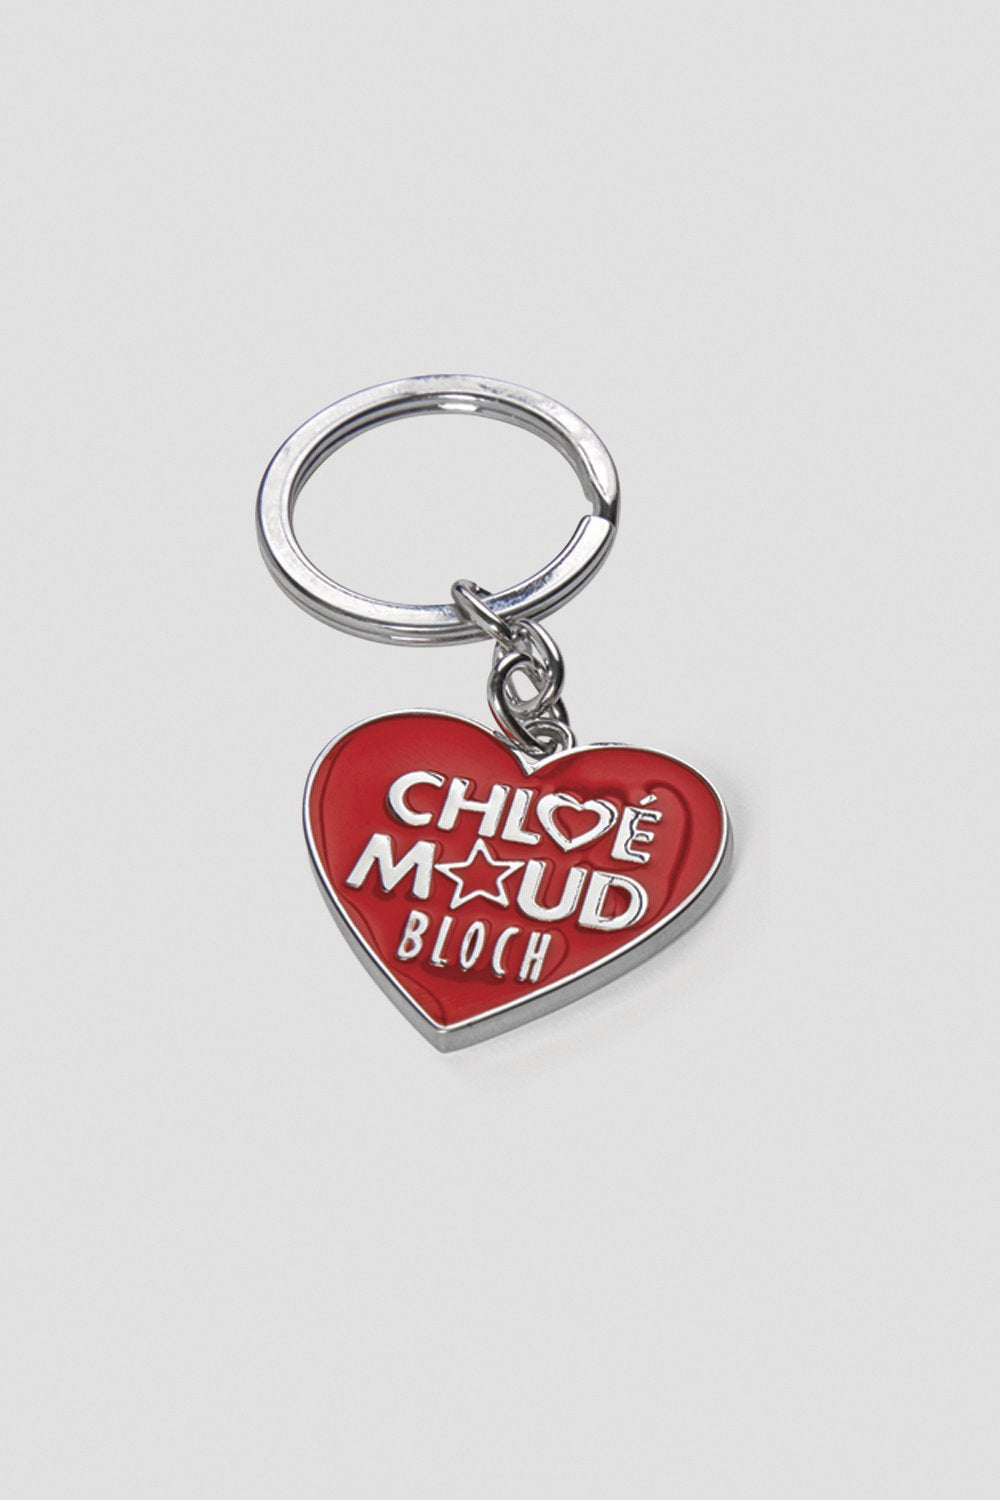 Chloe and Maud Key Chain - BLOCH US